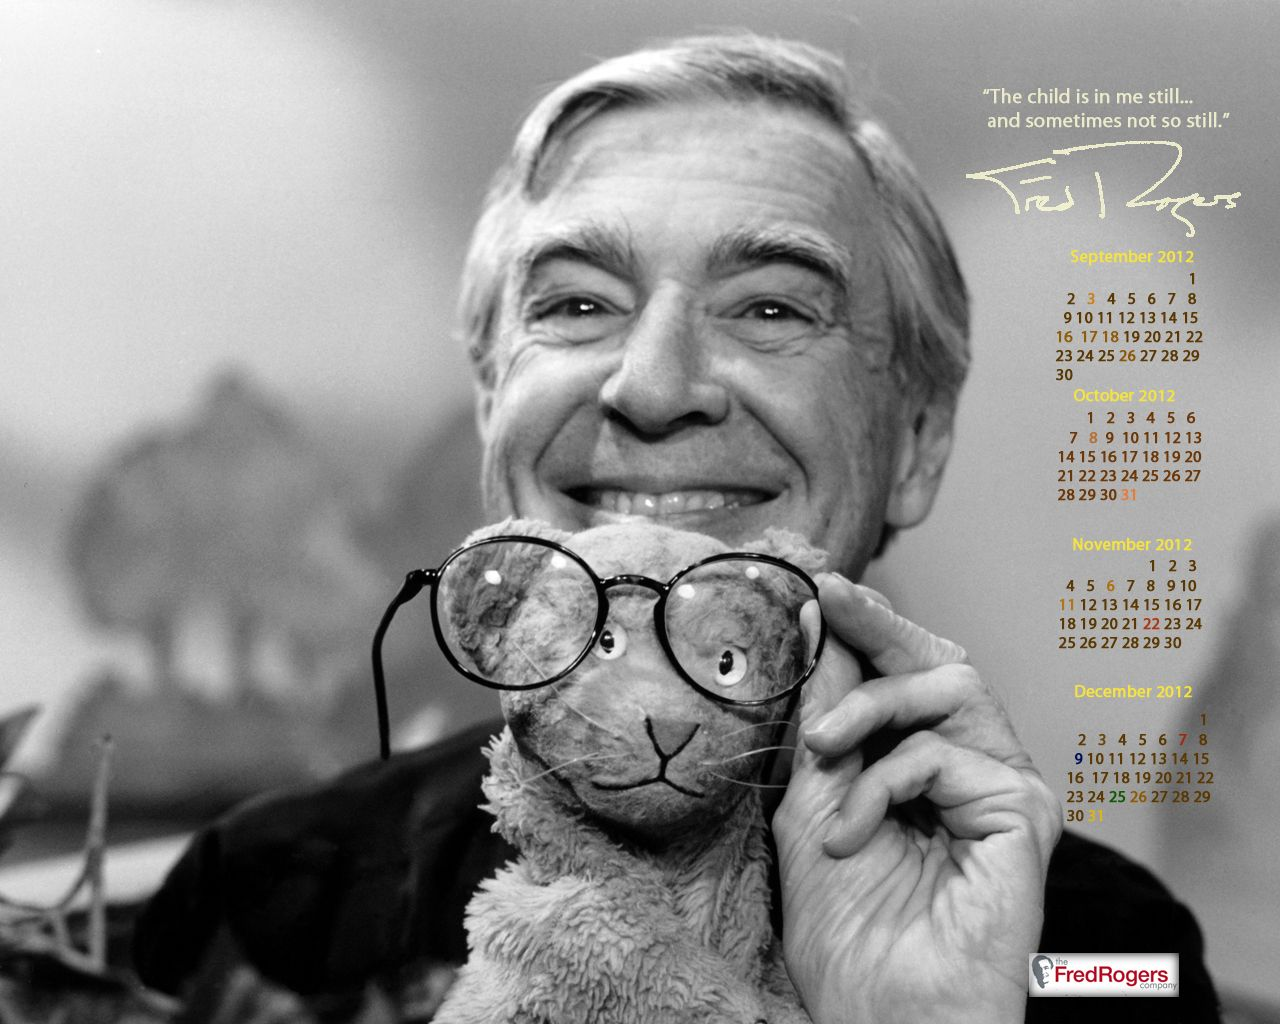 Fred Rogers Mister Rogers Neighborhood Mr Rogers Fred Rogers